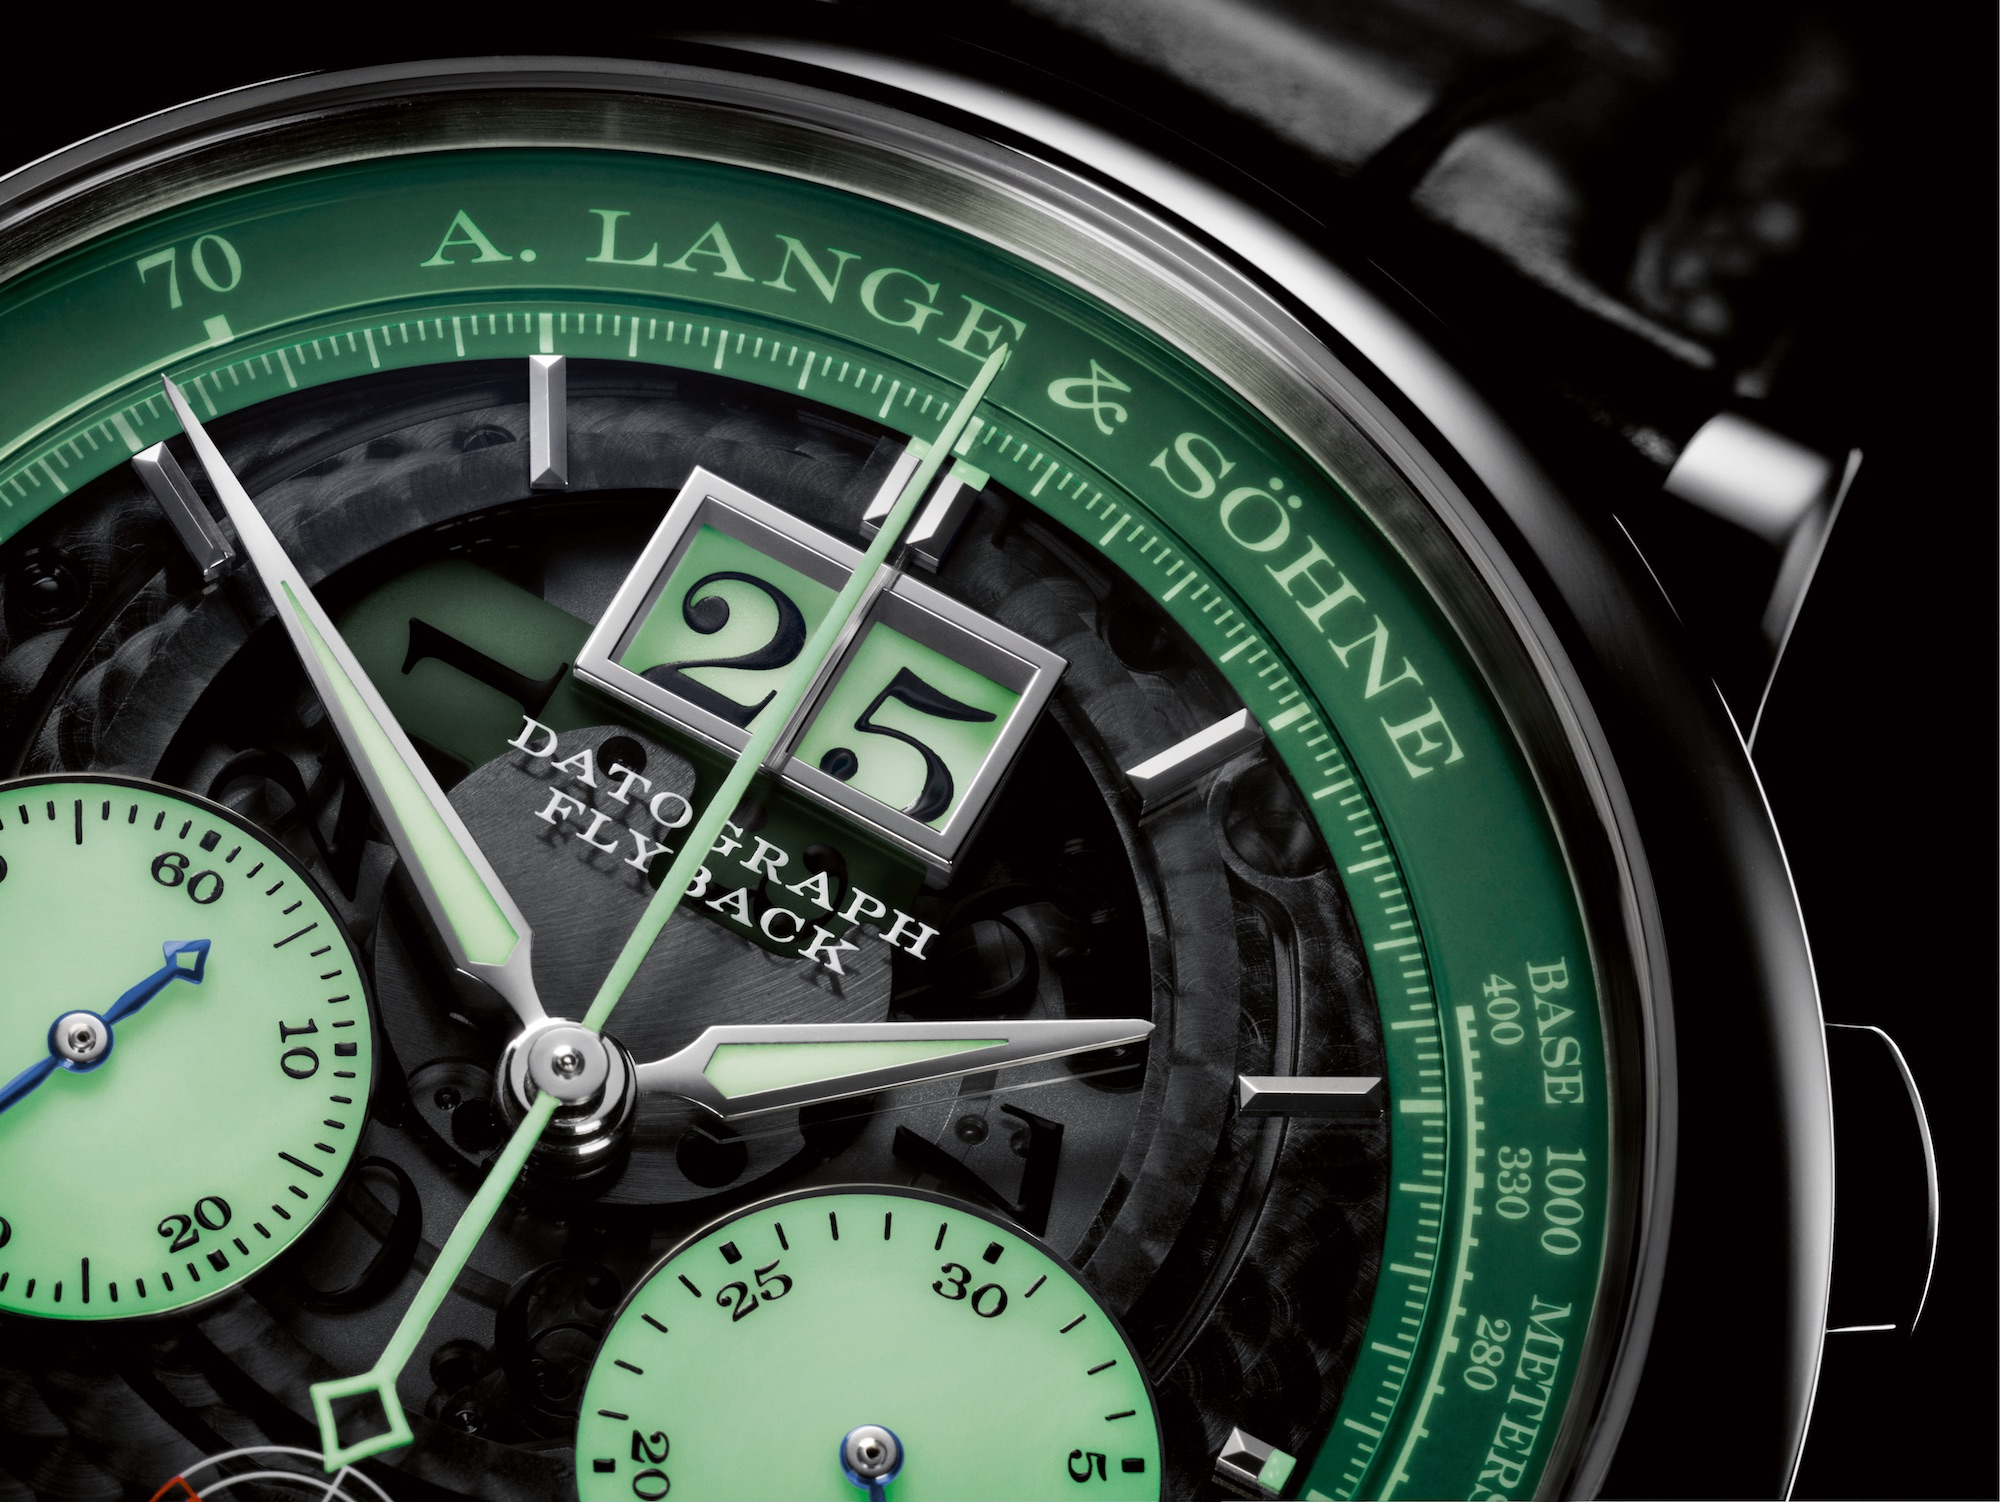 A. Lange & Söhne Datograph Lumen Up/Down watch terms